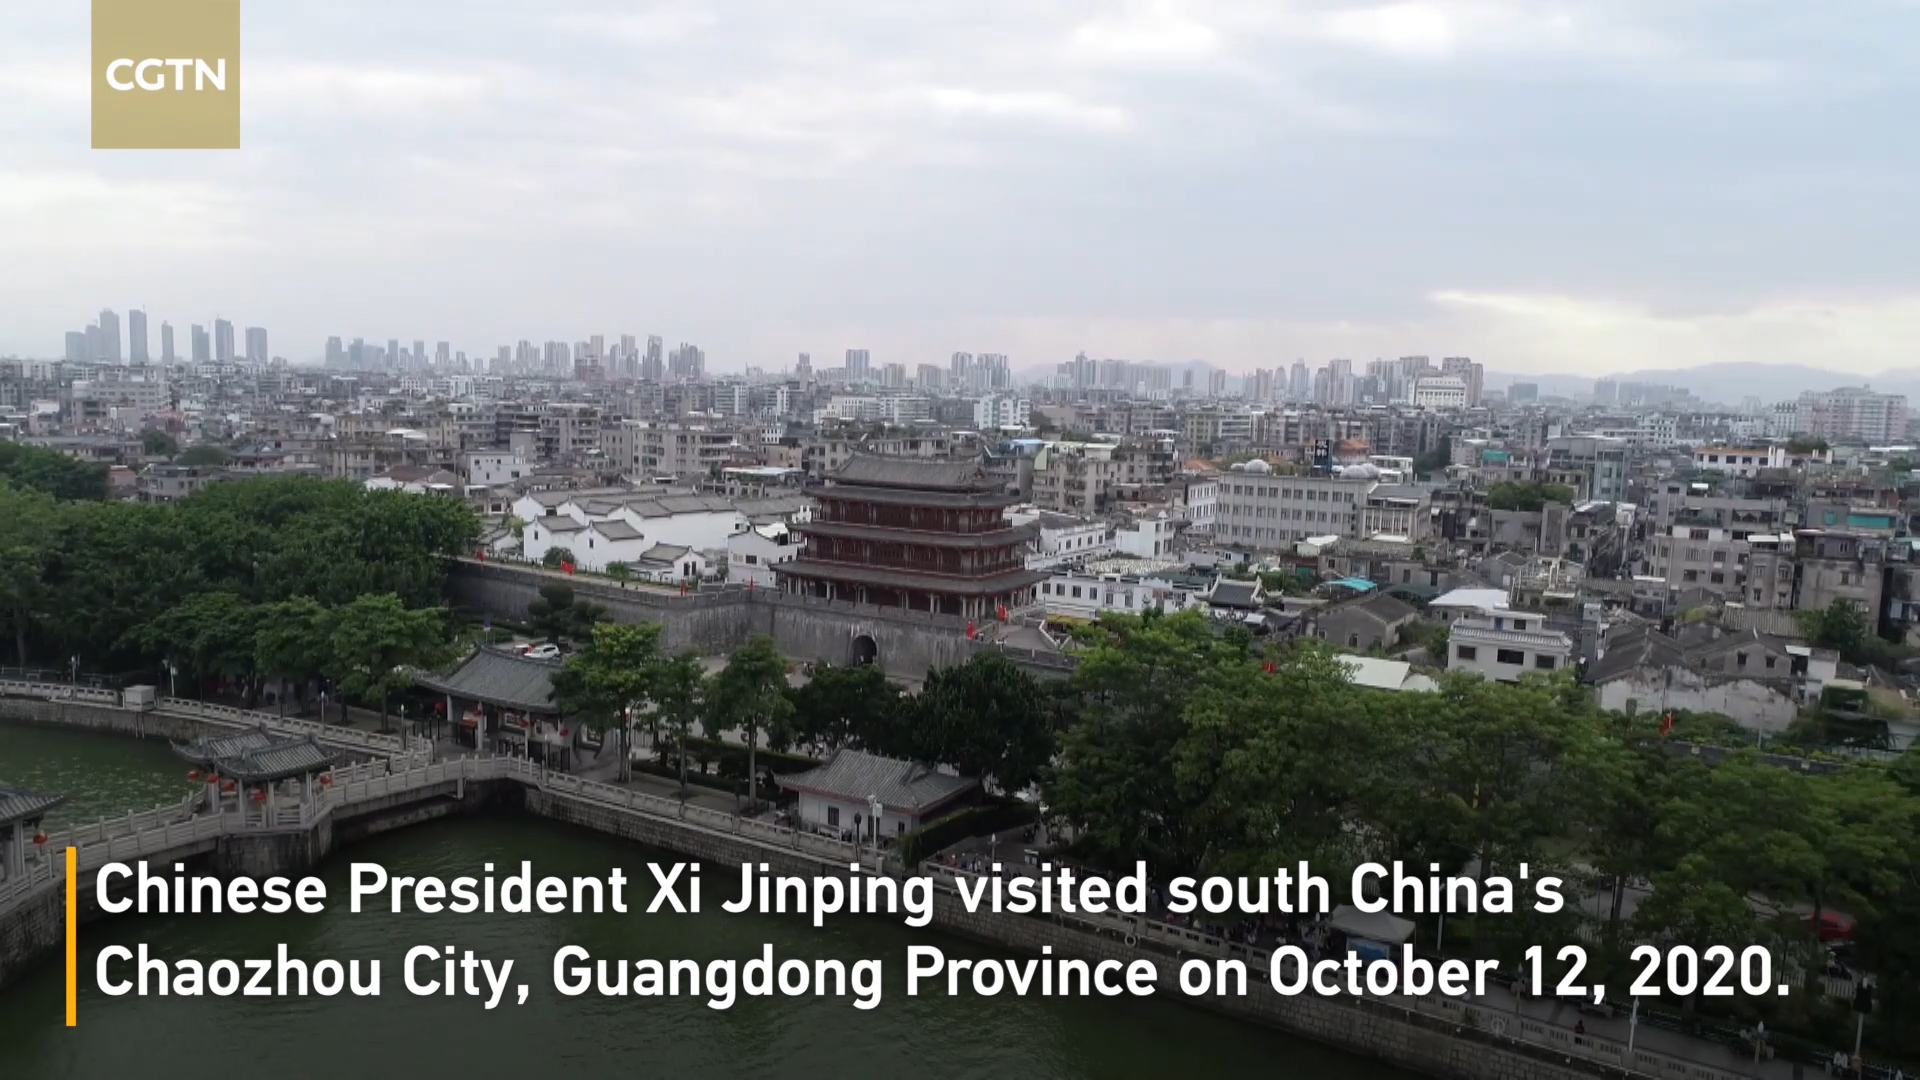 CGTN: 'Reform and Opening-Up' Remains Theme of Xi Jinping's Visit to China's Guangdong Province